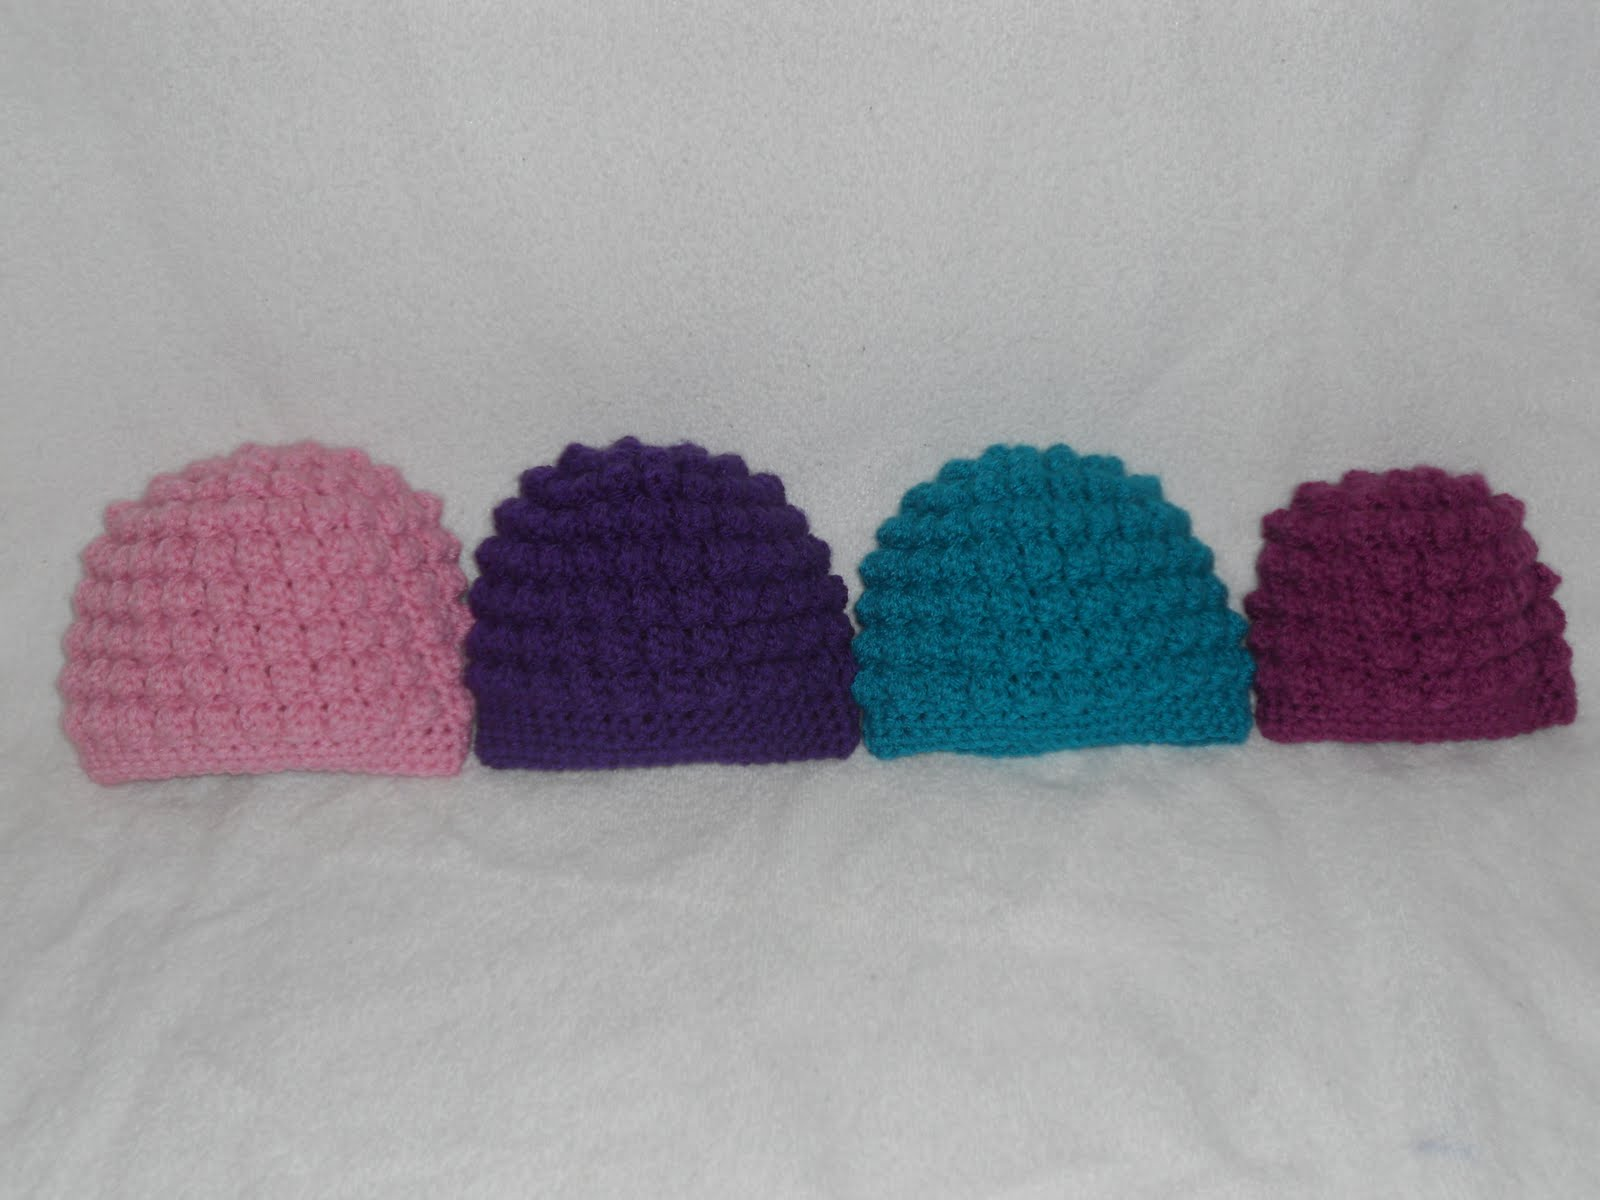 Crochet Pattern Central Baby Hats : BABY CROCHET BEANIE PATTERN - Crochet ? Learn How to Crochet